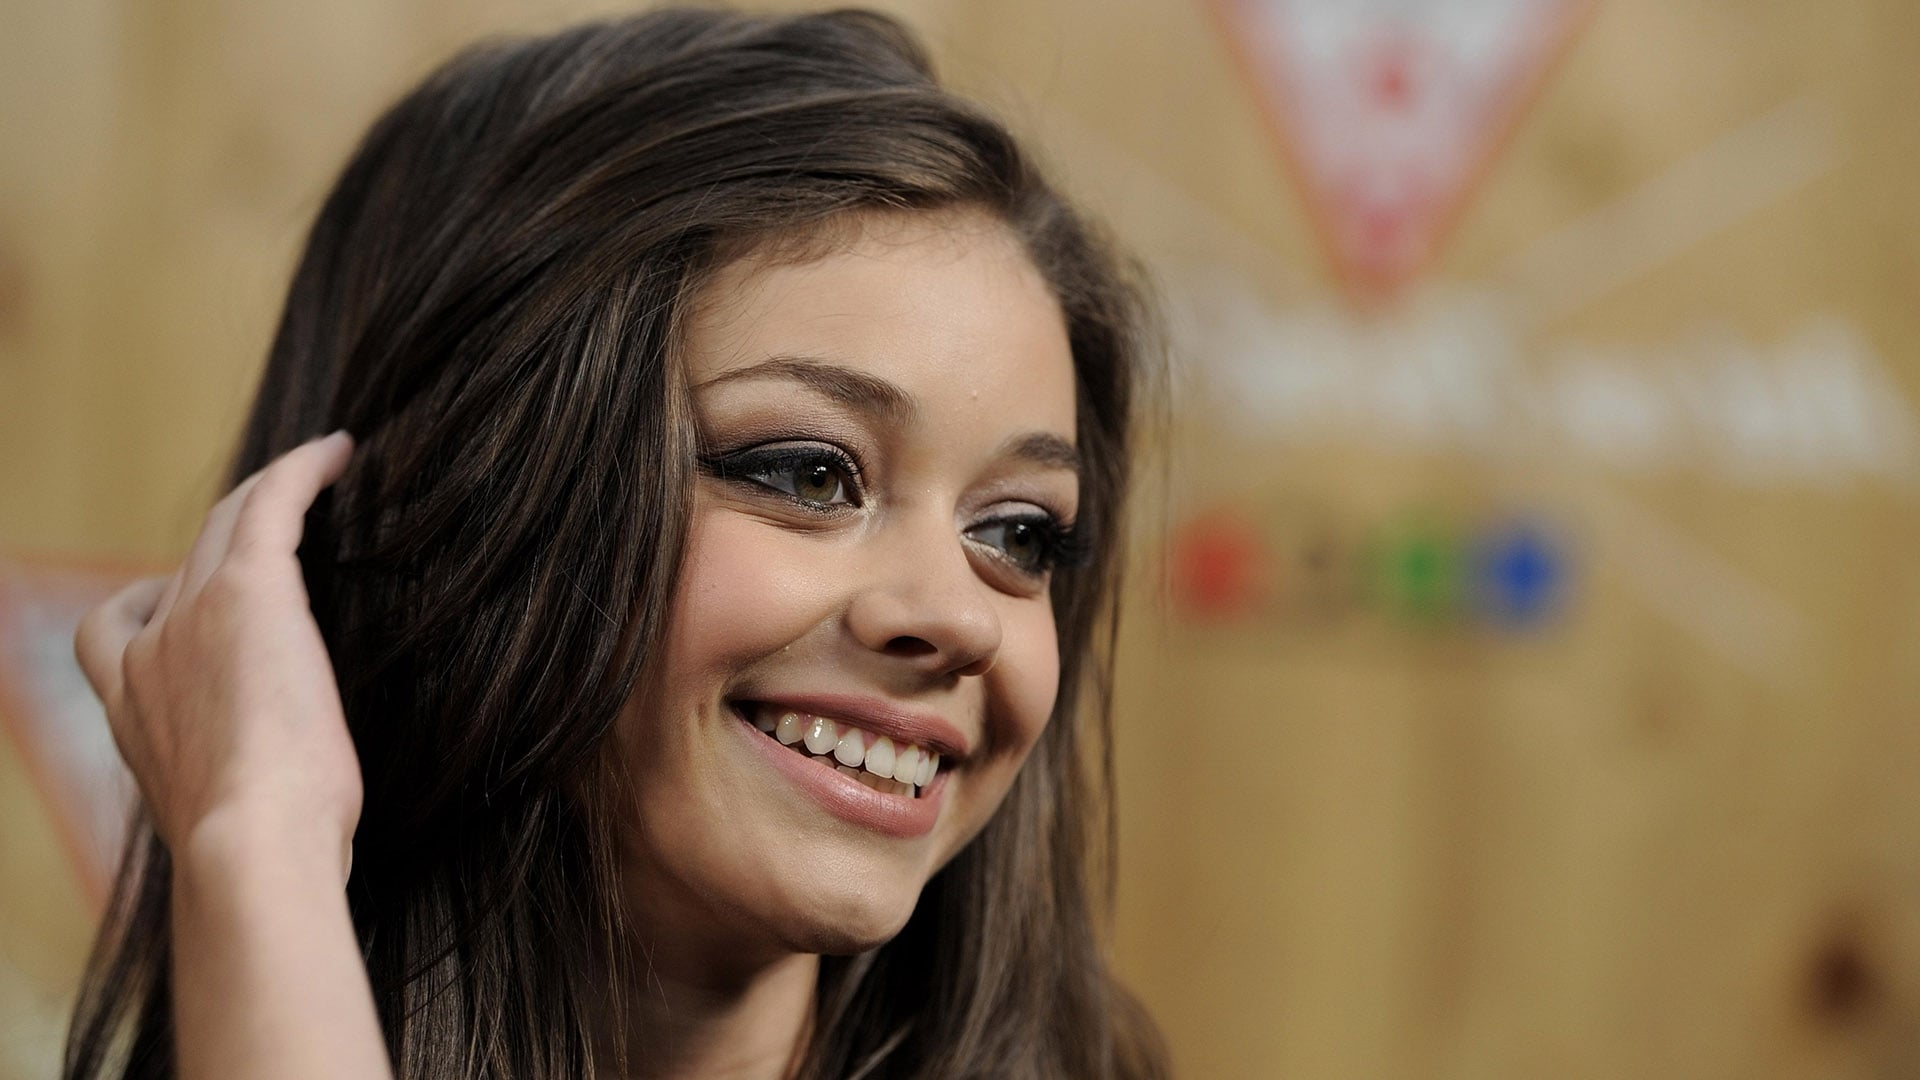 Cool Sarah Hyland HD pic for PC